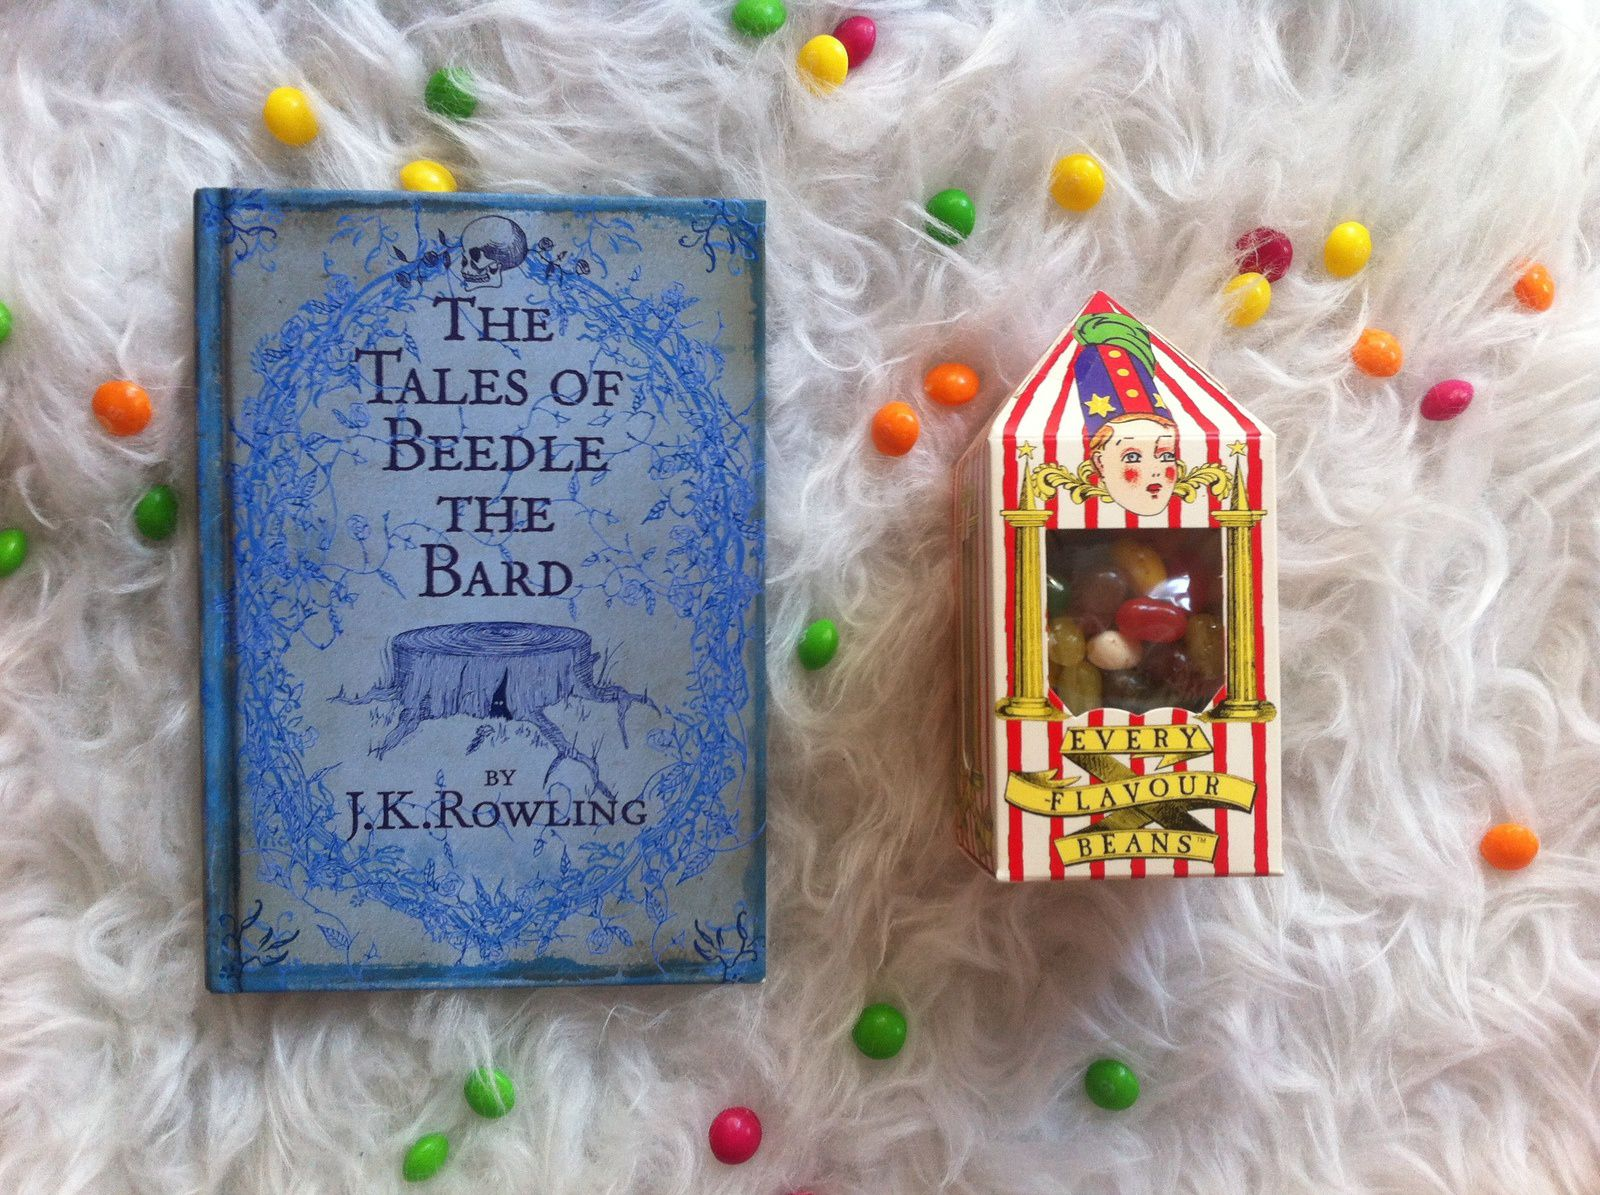 Buchbewertung: 'The Tales of Beedle the Bard'